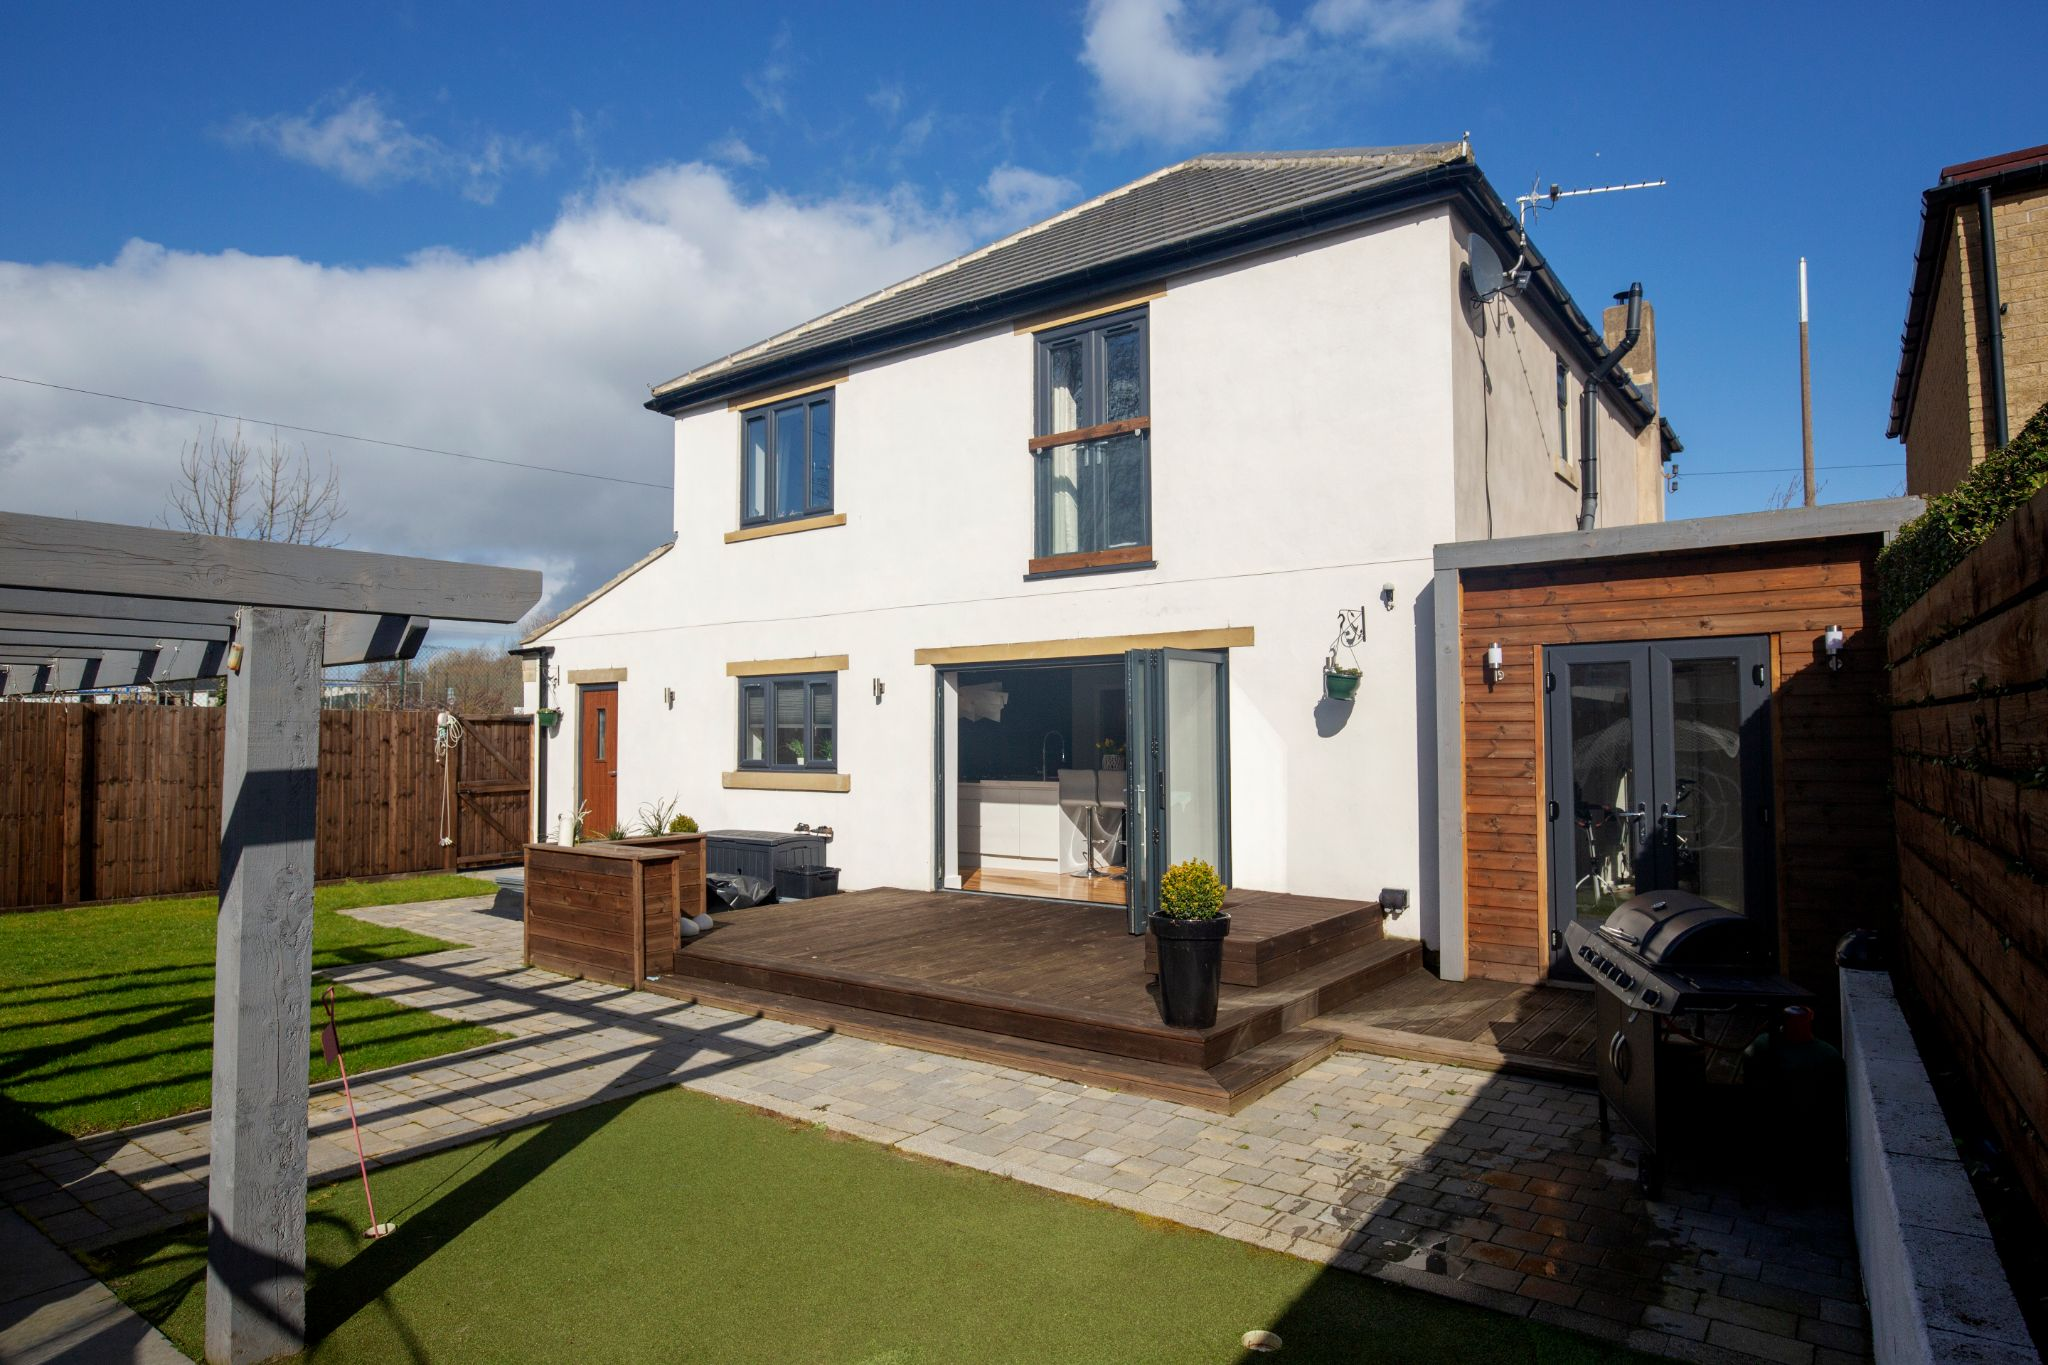 4 bedroom detached house For Sale in Brighouse - Rear elevation